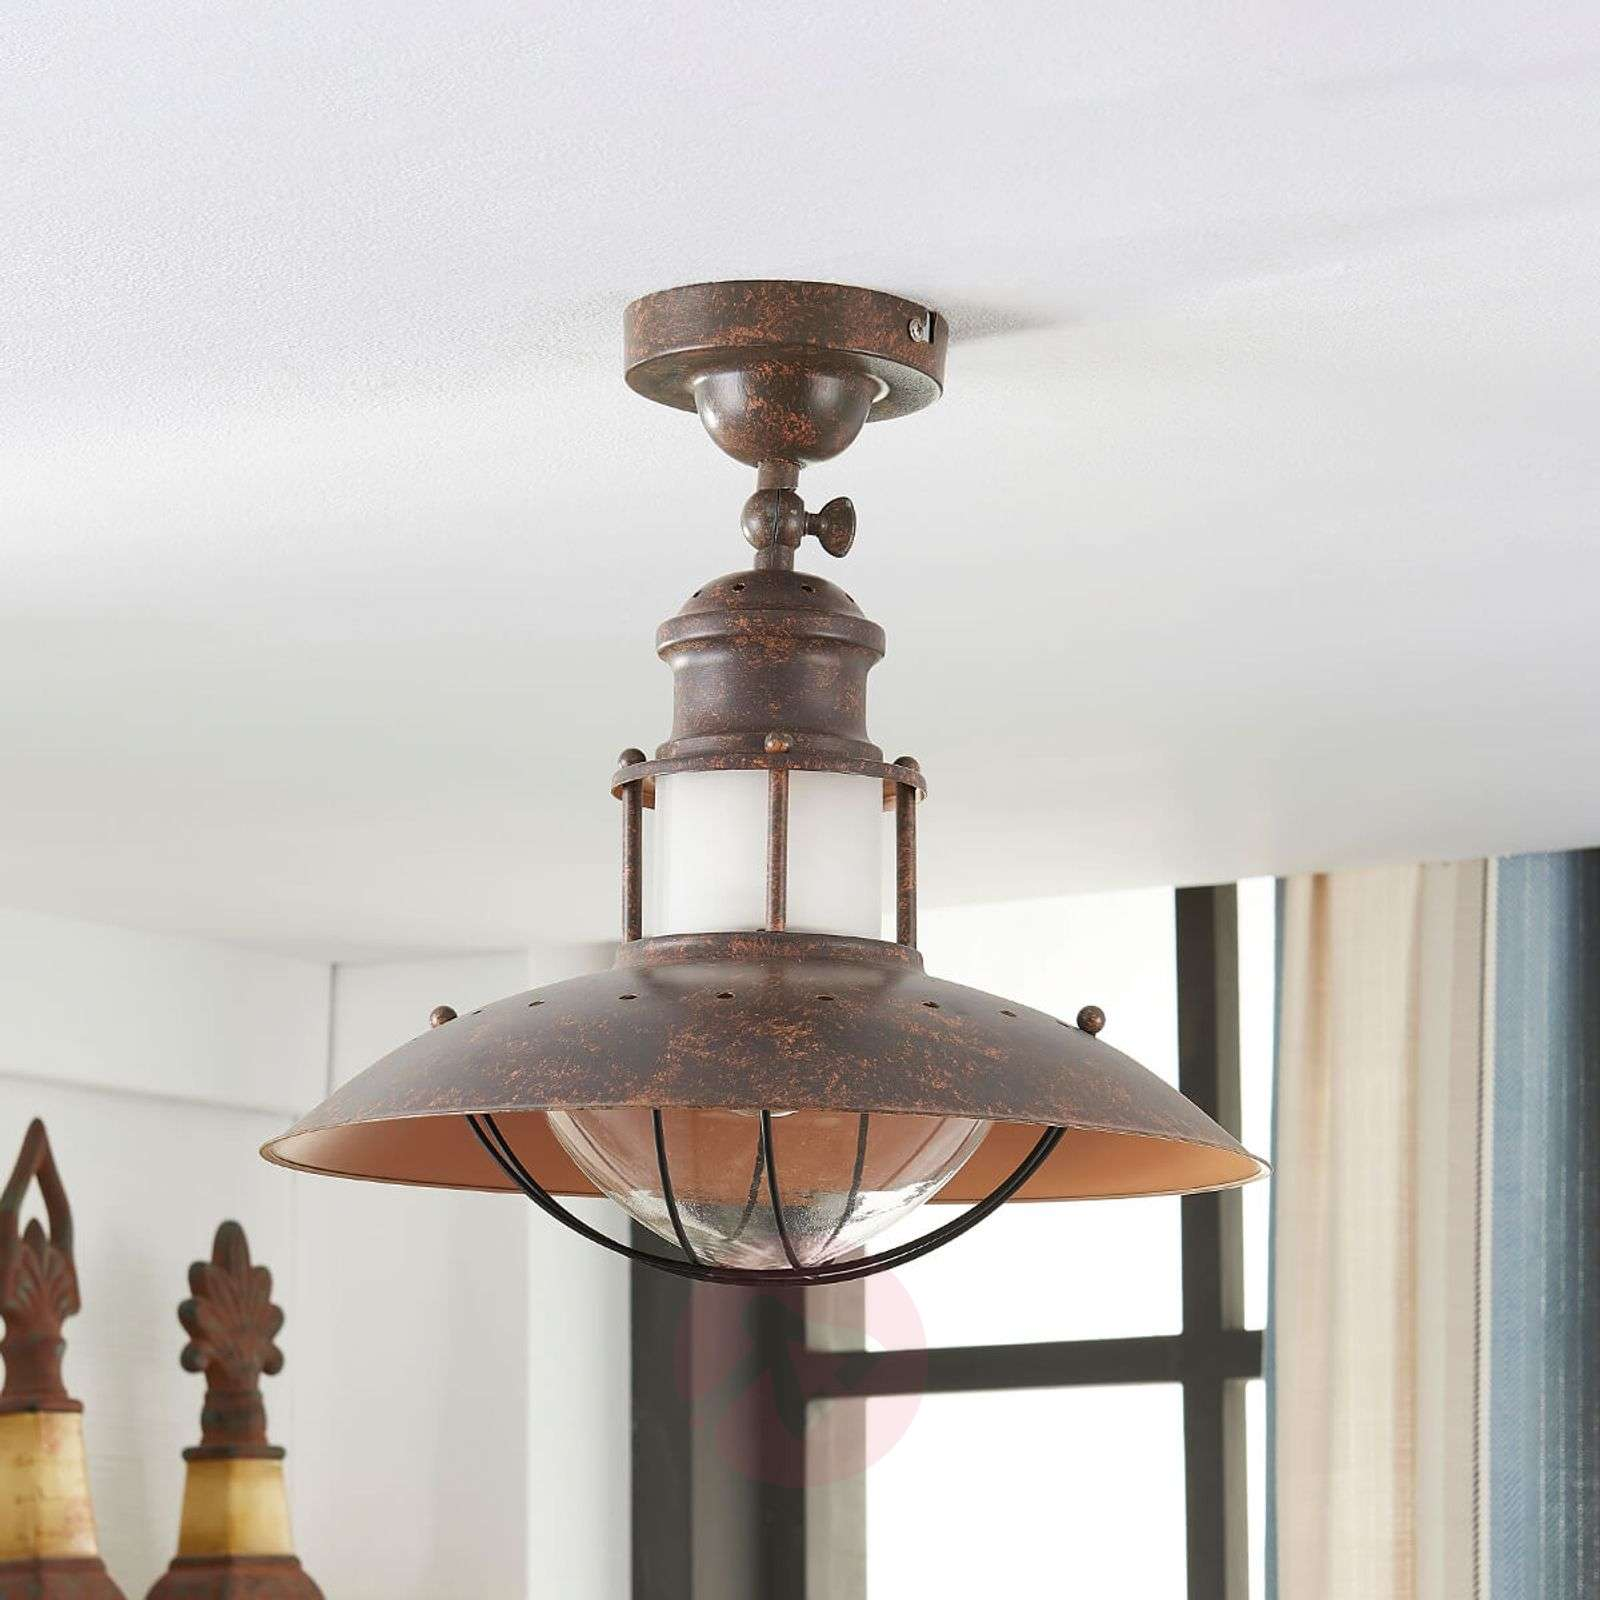 Rustic Lighting Company: Rustic Ceiling Light Louisanne